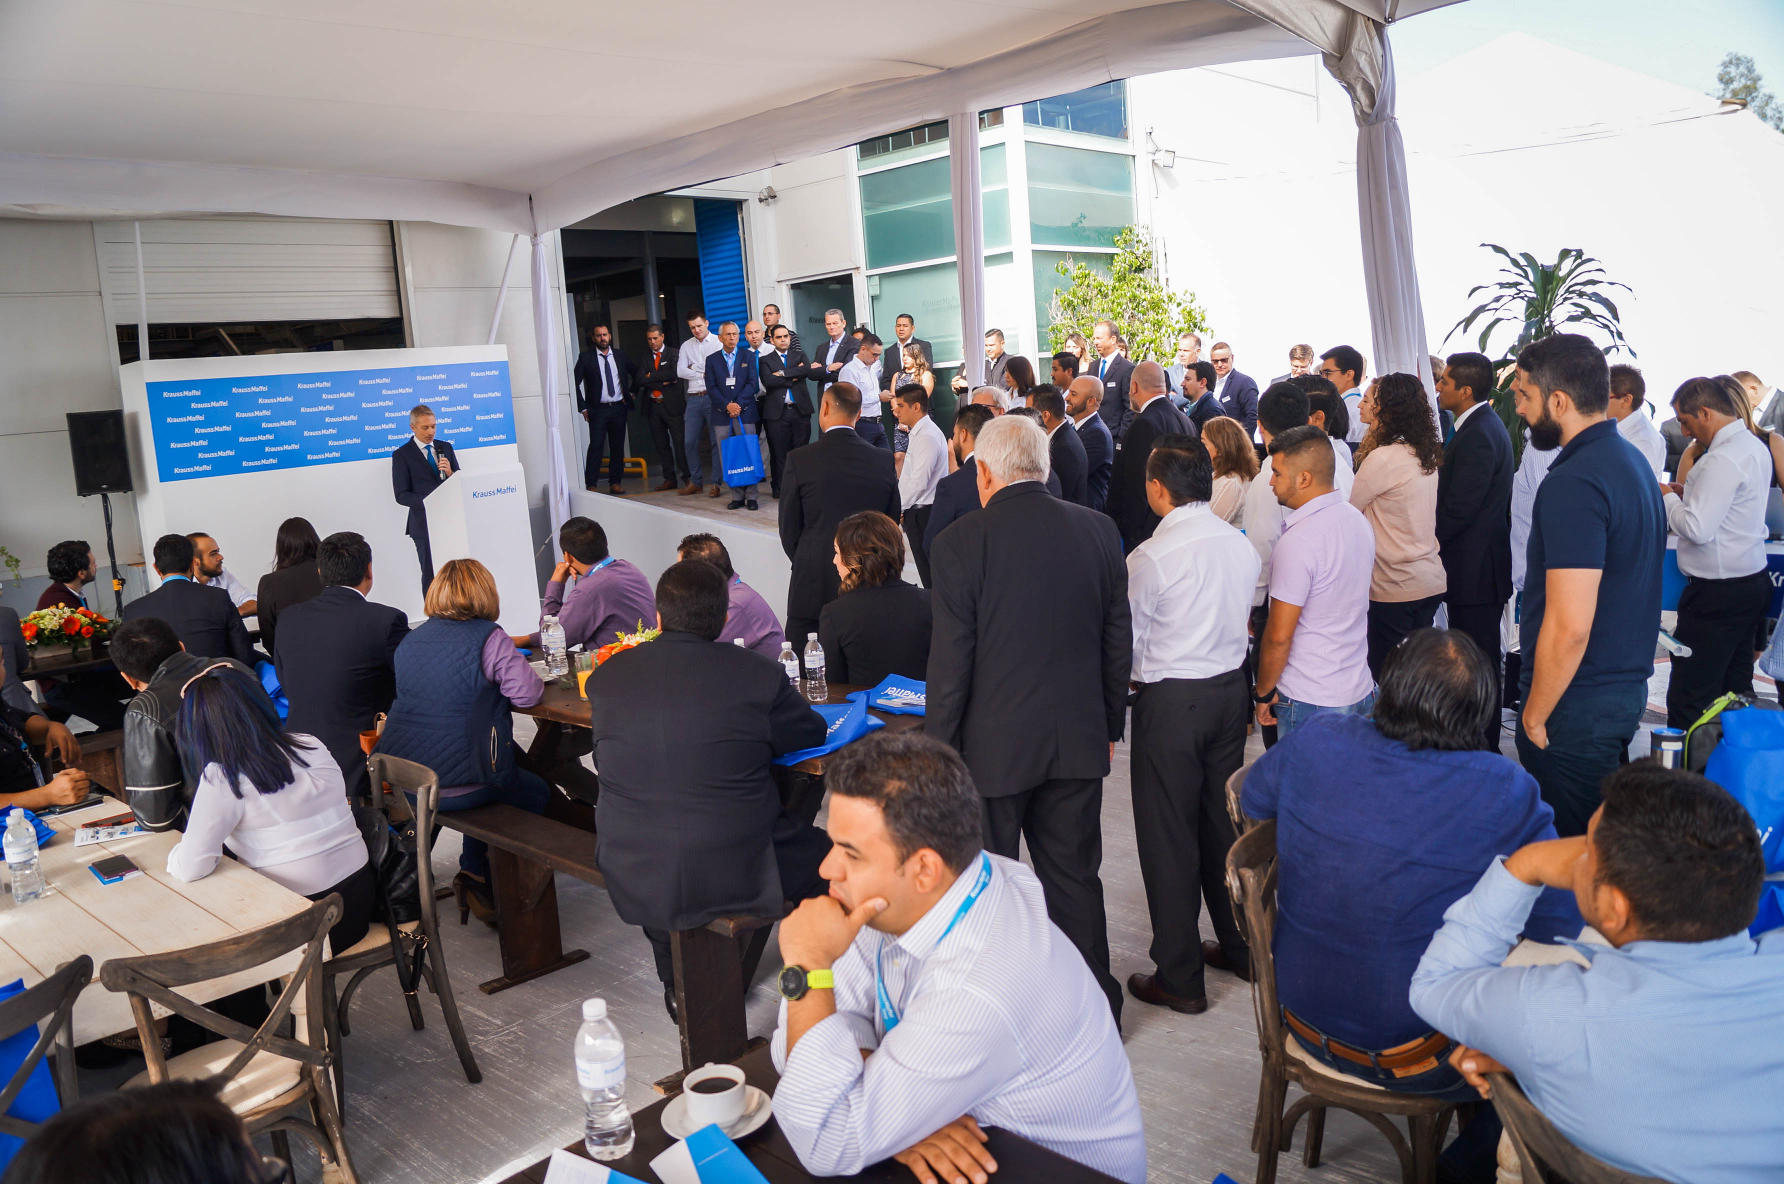 Klaus Jell, General Manager KraussMaffei Group Mexico, welcomed the guests at the Open House in Queretaro, photo: KraussMaffei Berstorff